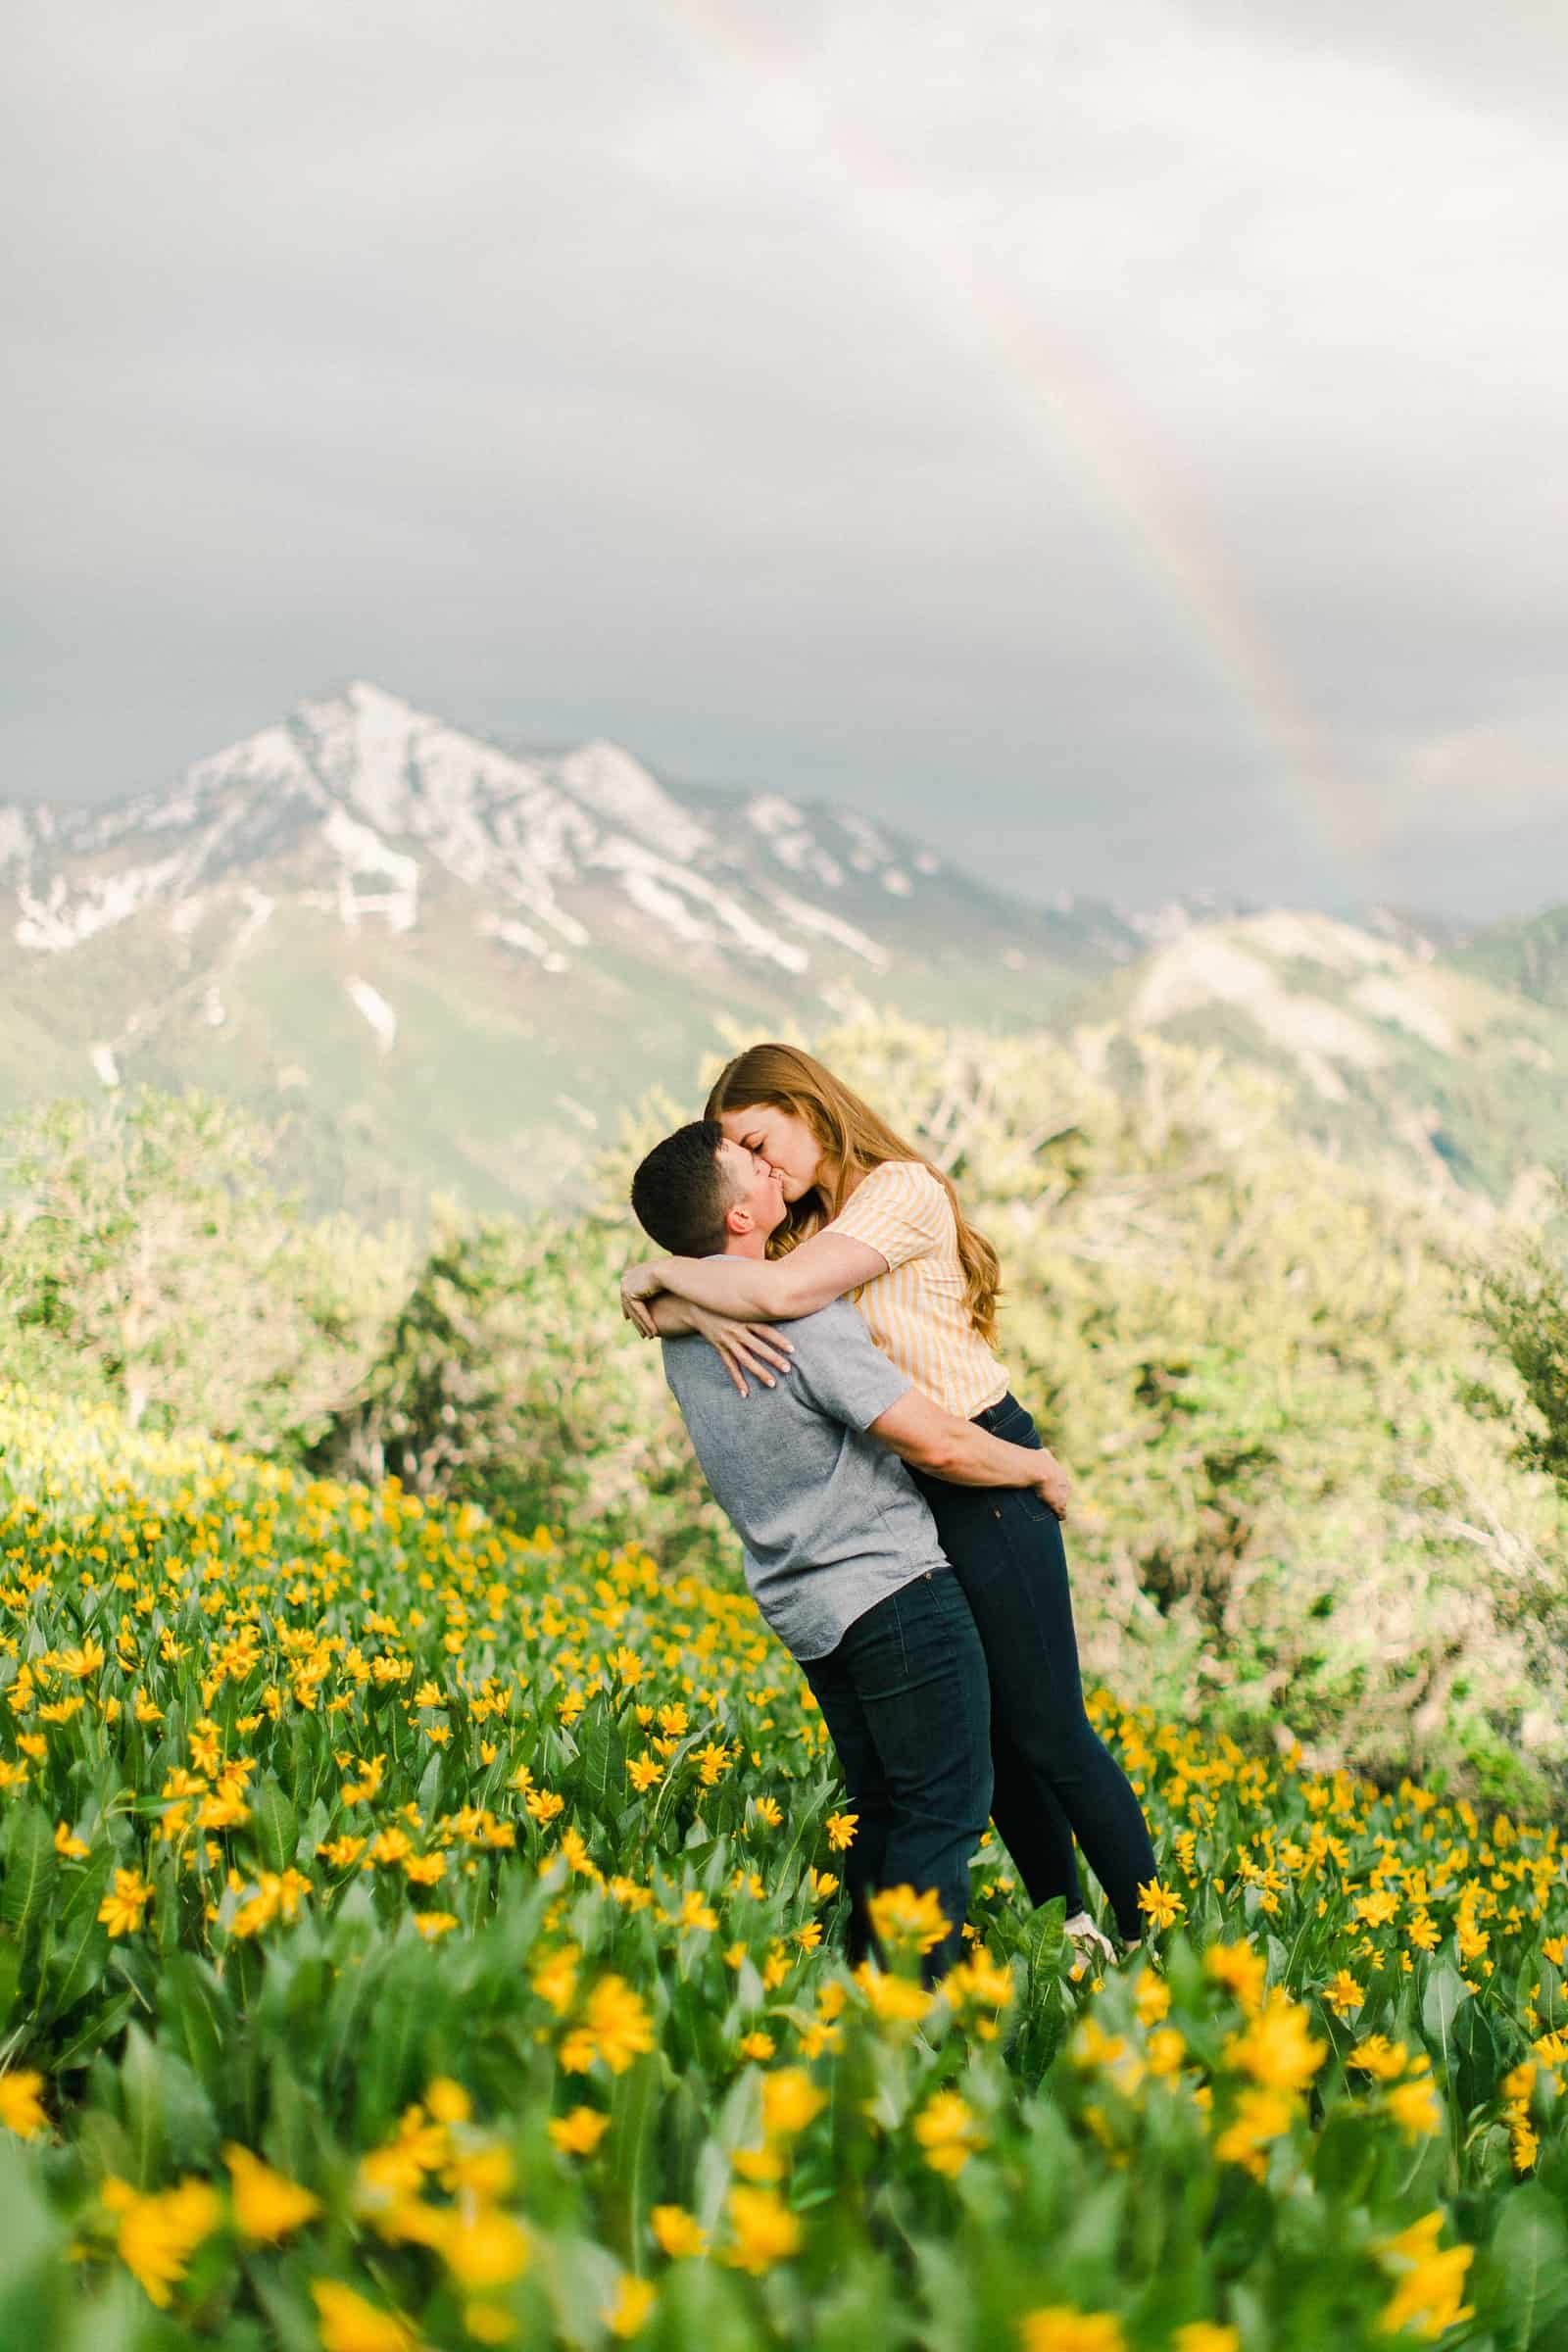 Provo Canyon wildflowers field engagement session, Utah wedding photography, engaged couple kissing in yellow flowers and mountains with rainbow in background